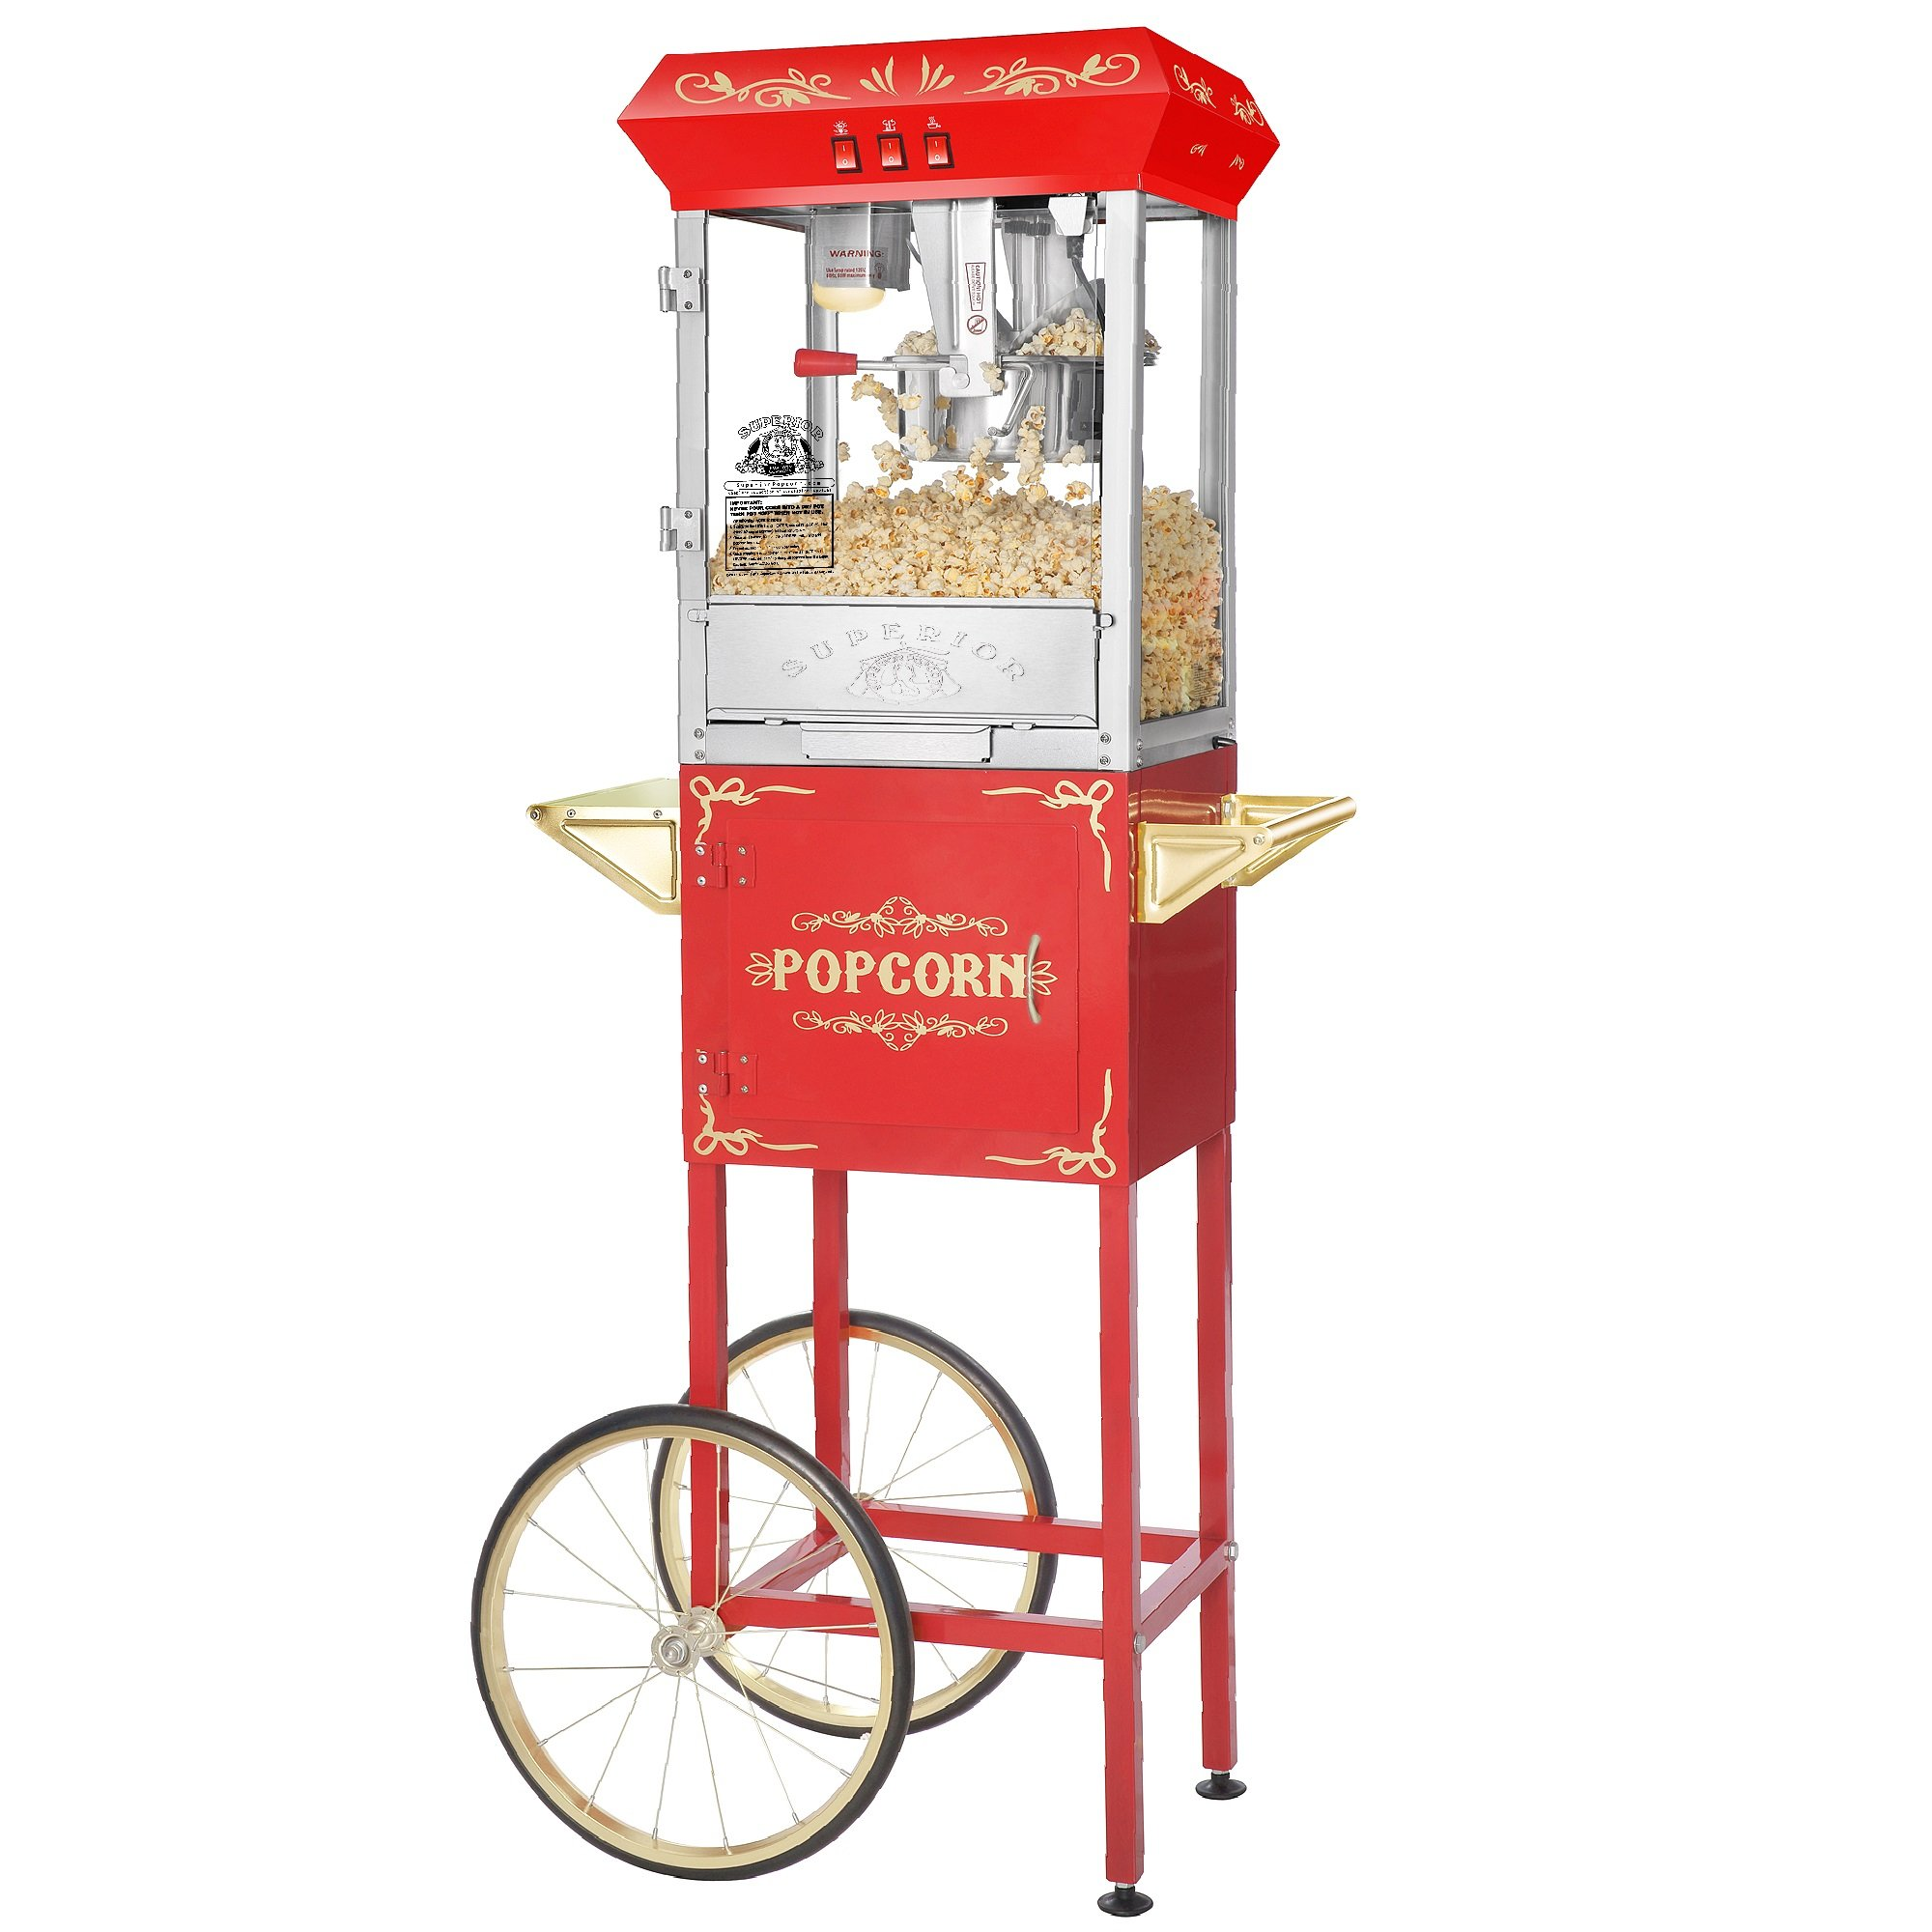 Superior Popcorn 8 Ounce Carnival Popcorn Popper Machine & Cart, 8 oz